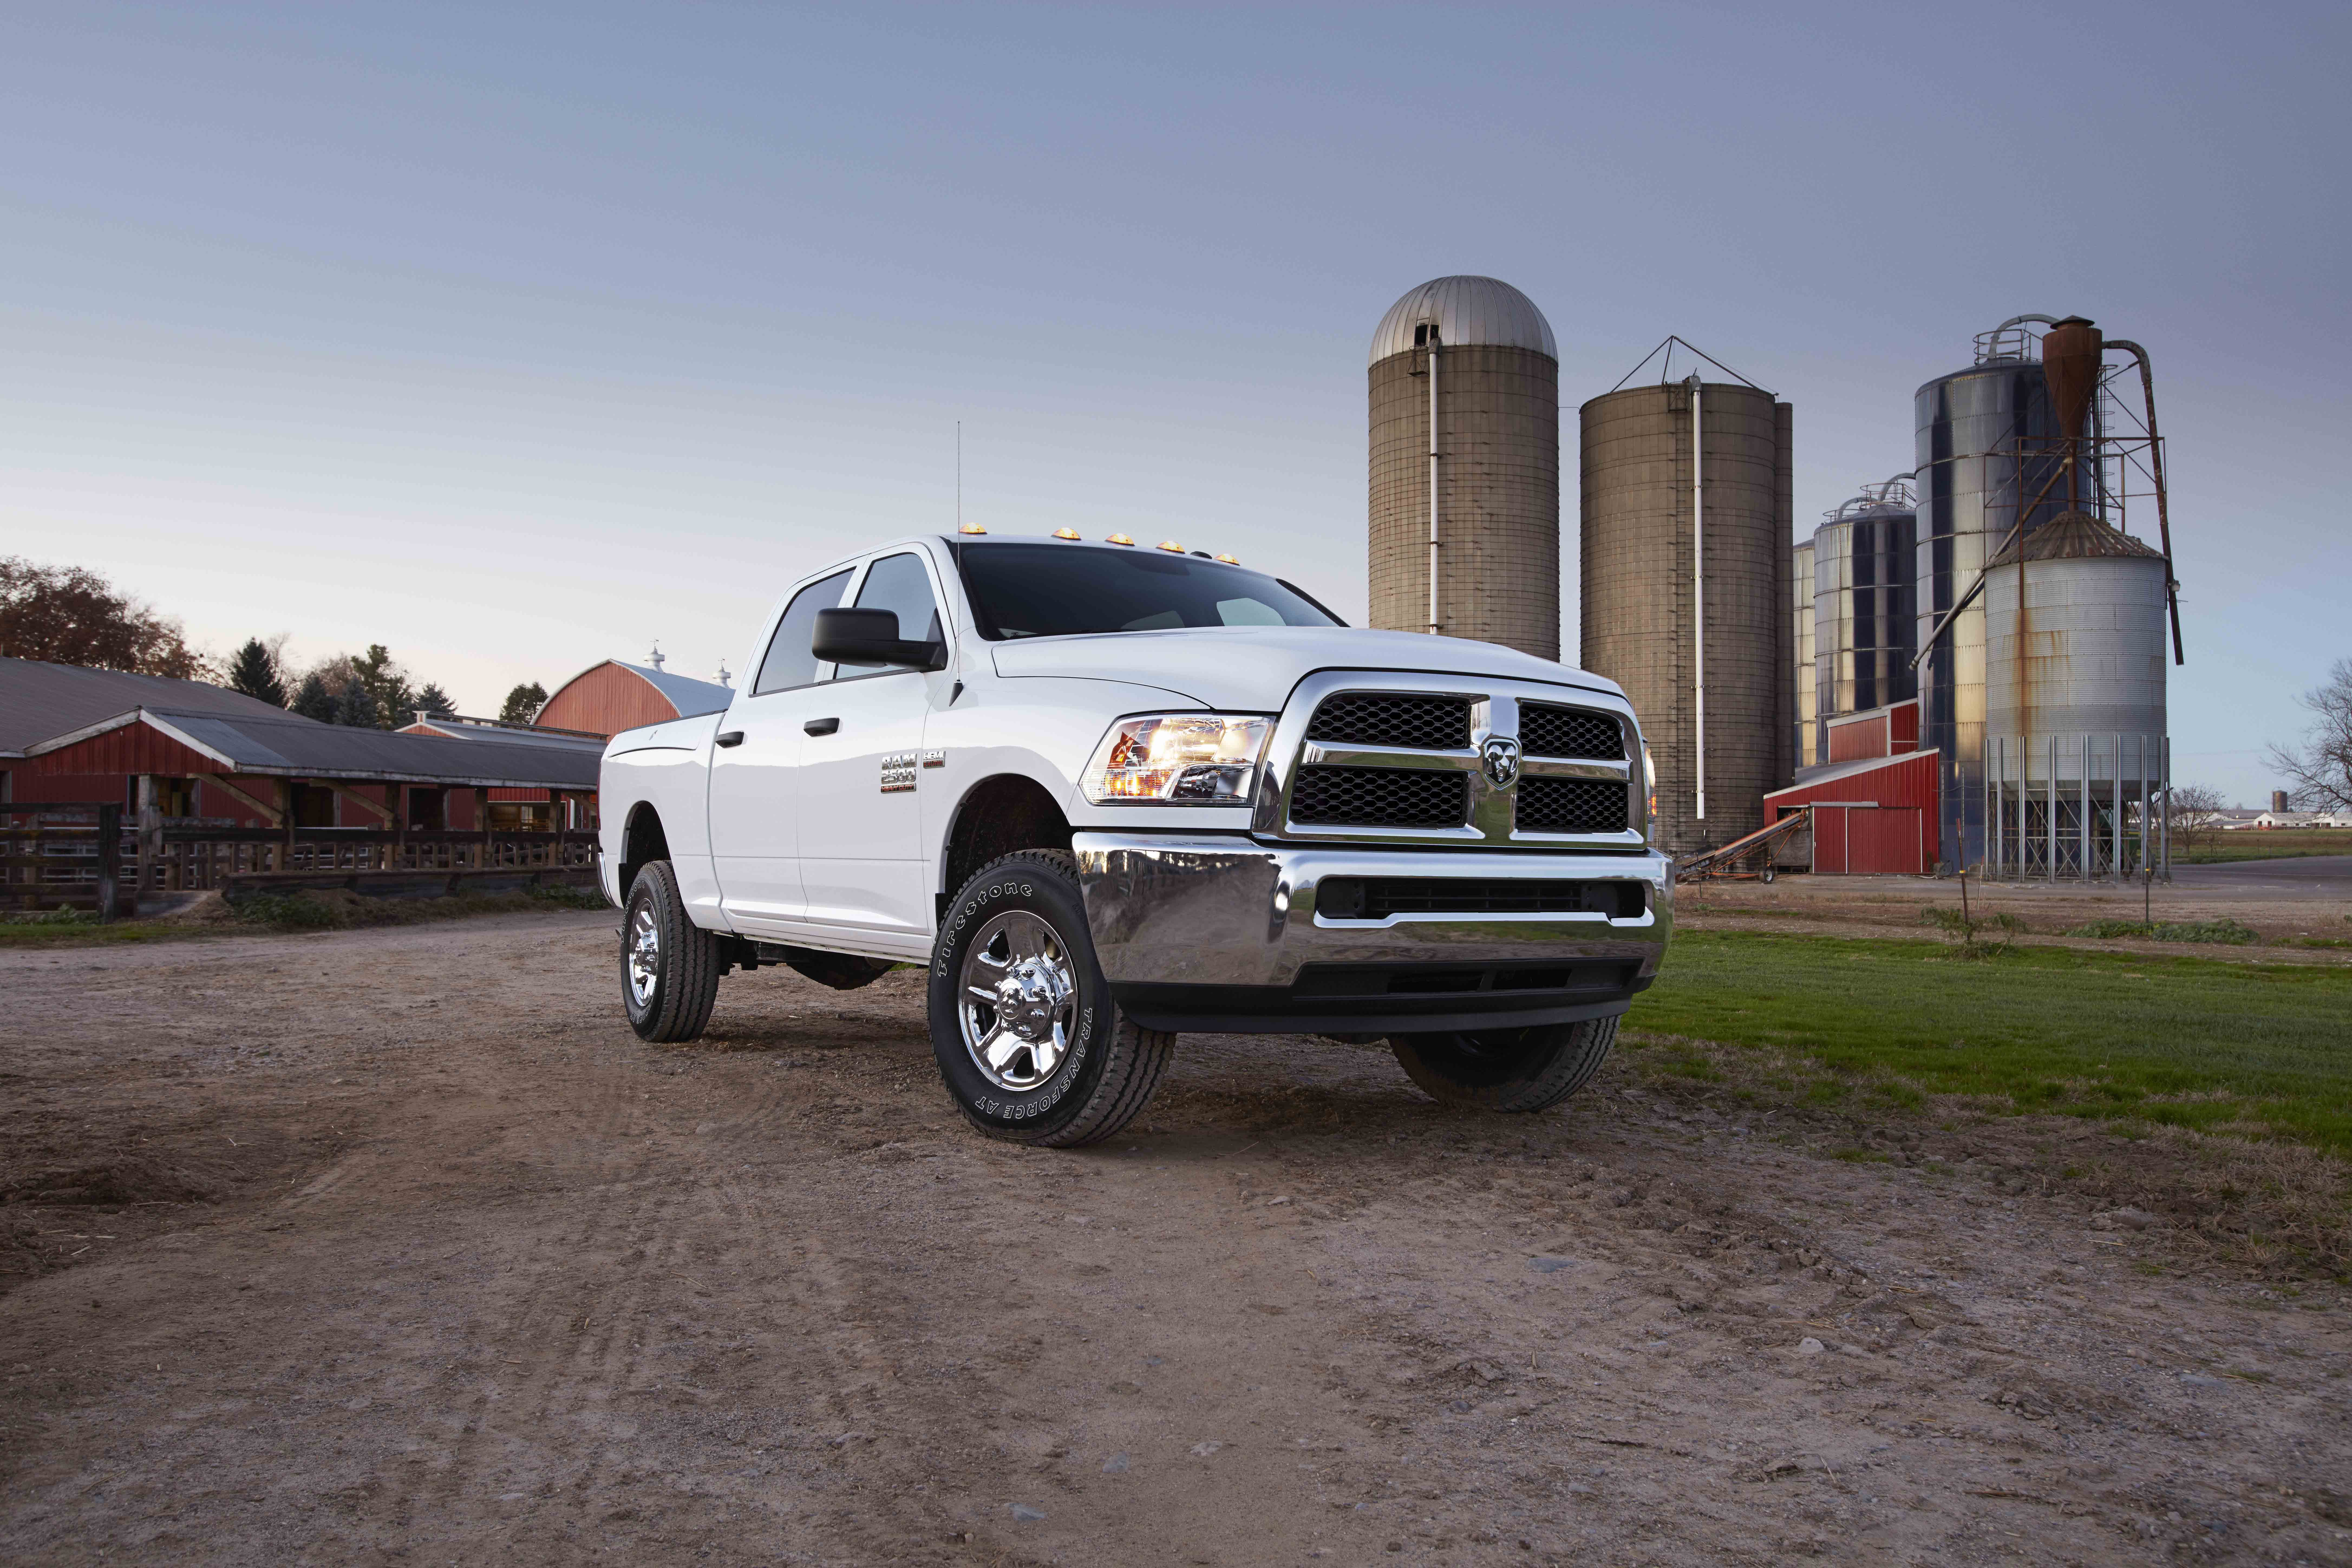 Commercial Ram Truck available in Sterling Heights, MI at Sterling Heights Dodge Chrysler Jeep Ram